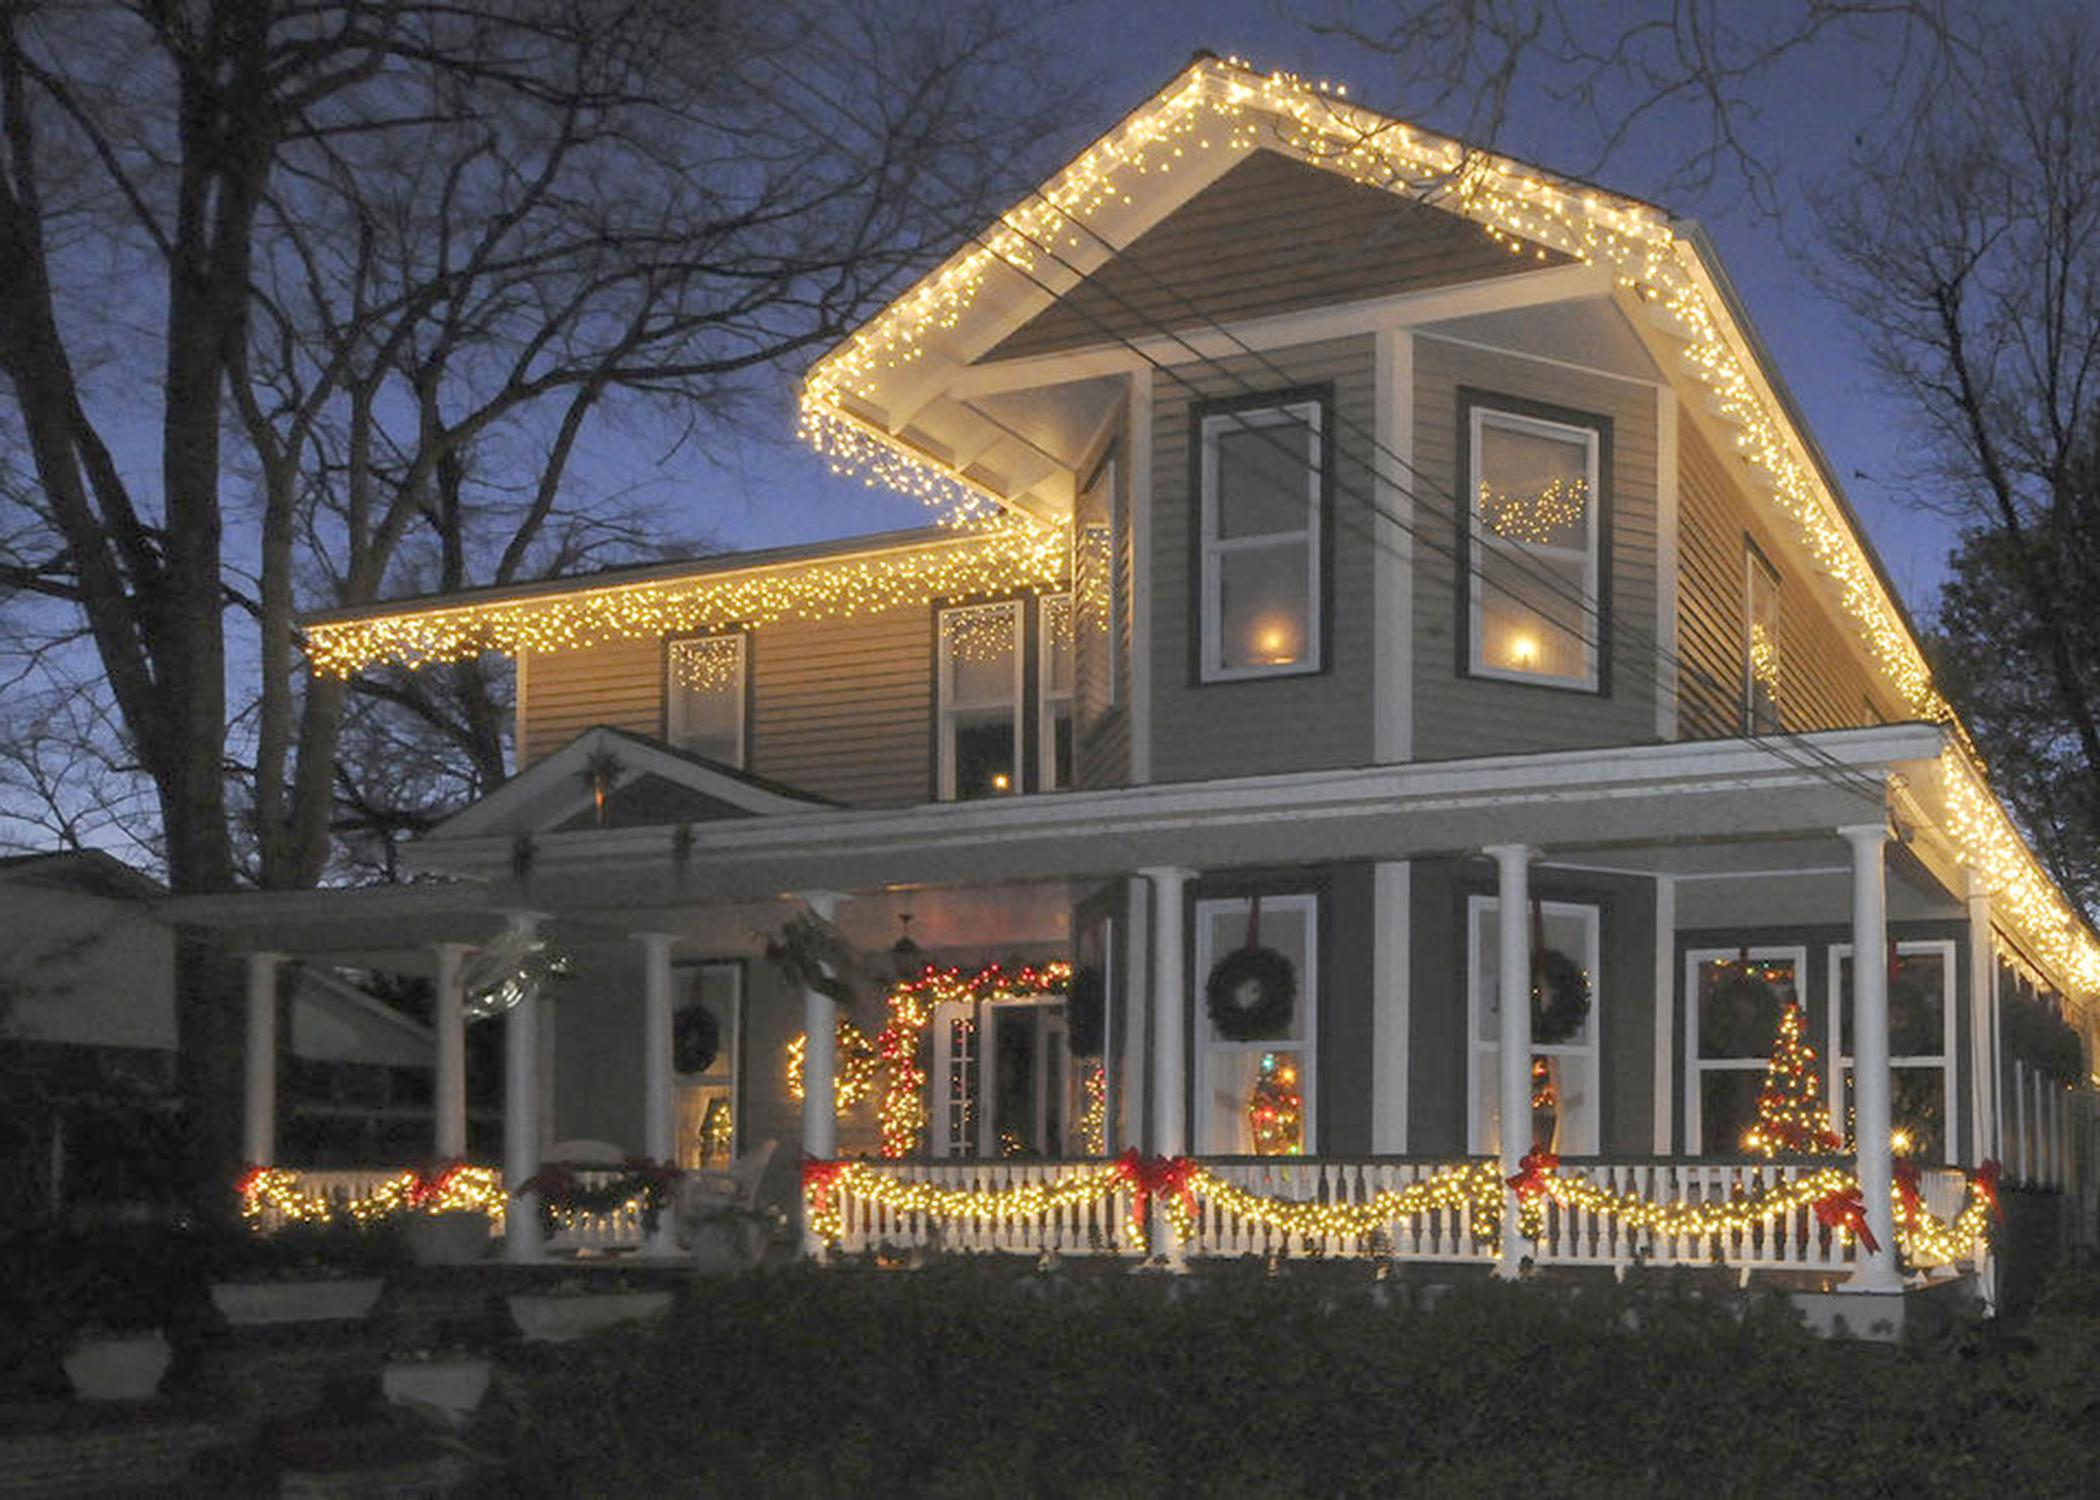 Outdoor decorations, such as these on a Starkville home, brighten the holidays but should be unplugged at night for safety. (File photo by MSU Ag Communications/Scott Corey)